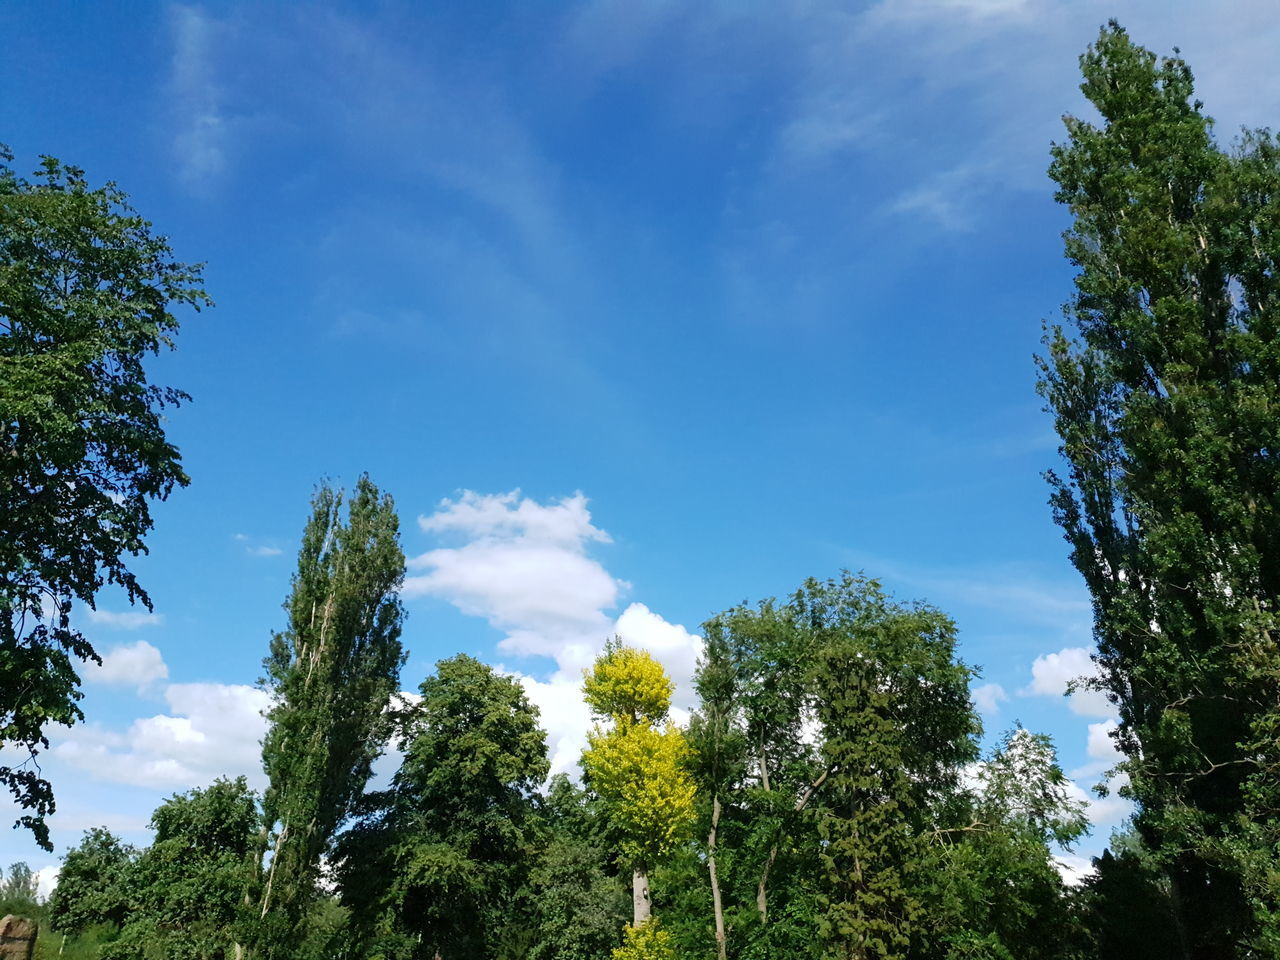 LOW ANGLE VIEW OF TREES AGAINST CLEAR SKY